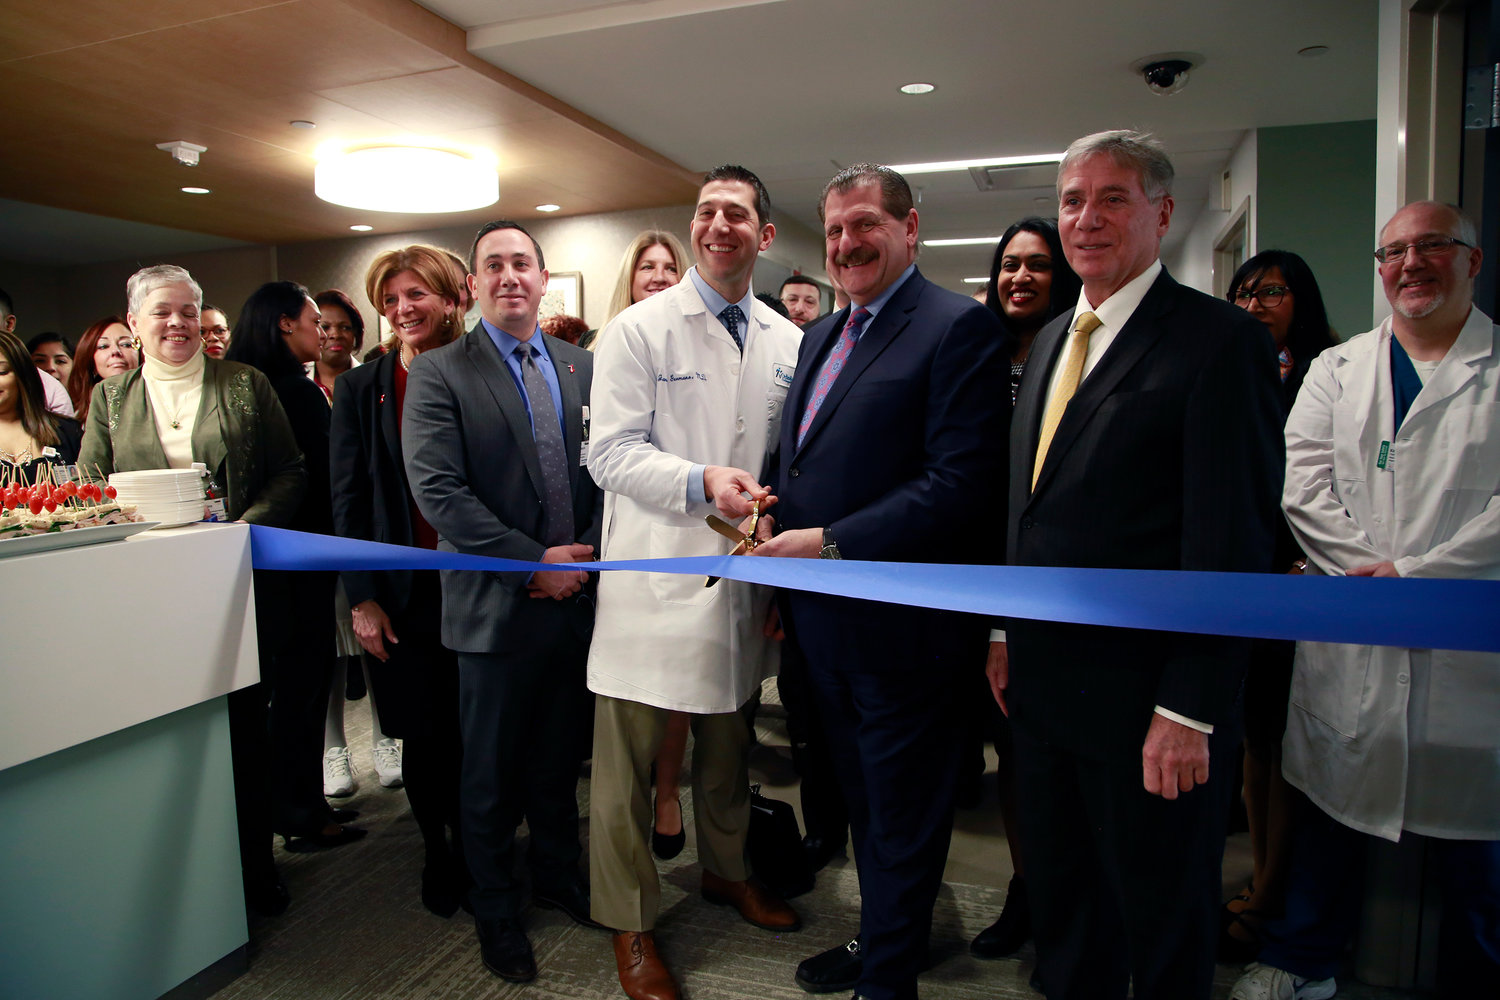 Administrators at Long Island Jewish Valley Stream hospital unveiled the facility's new $13.5 million Orthopedic Unit at a ribbon cutting ceremony on Feb. 1.